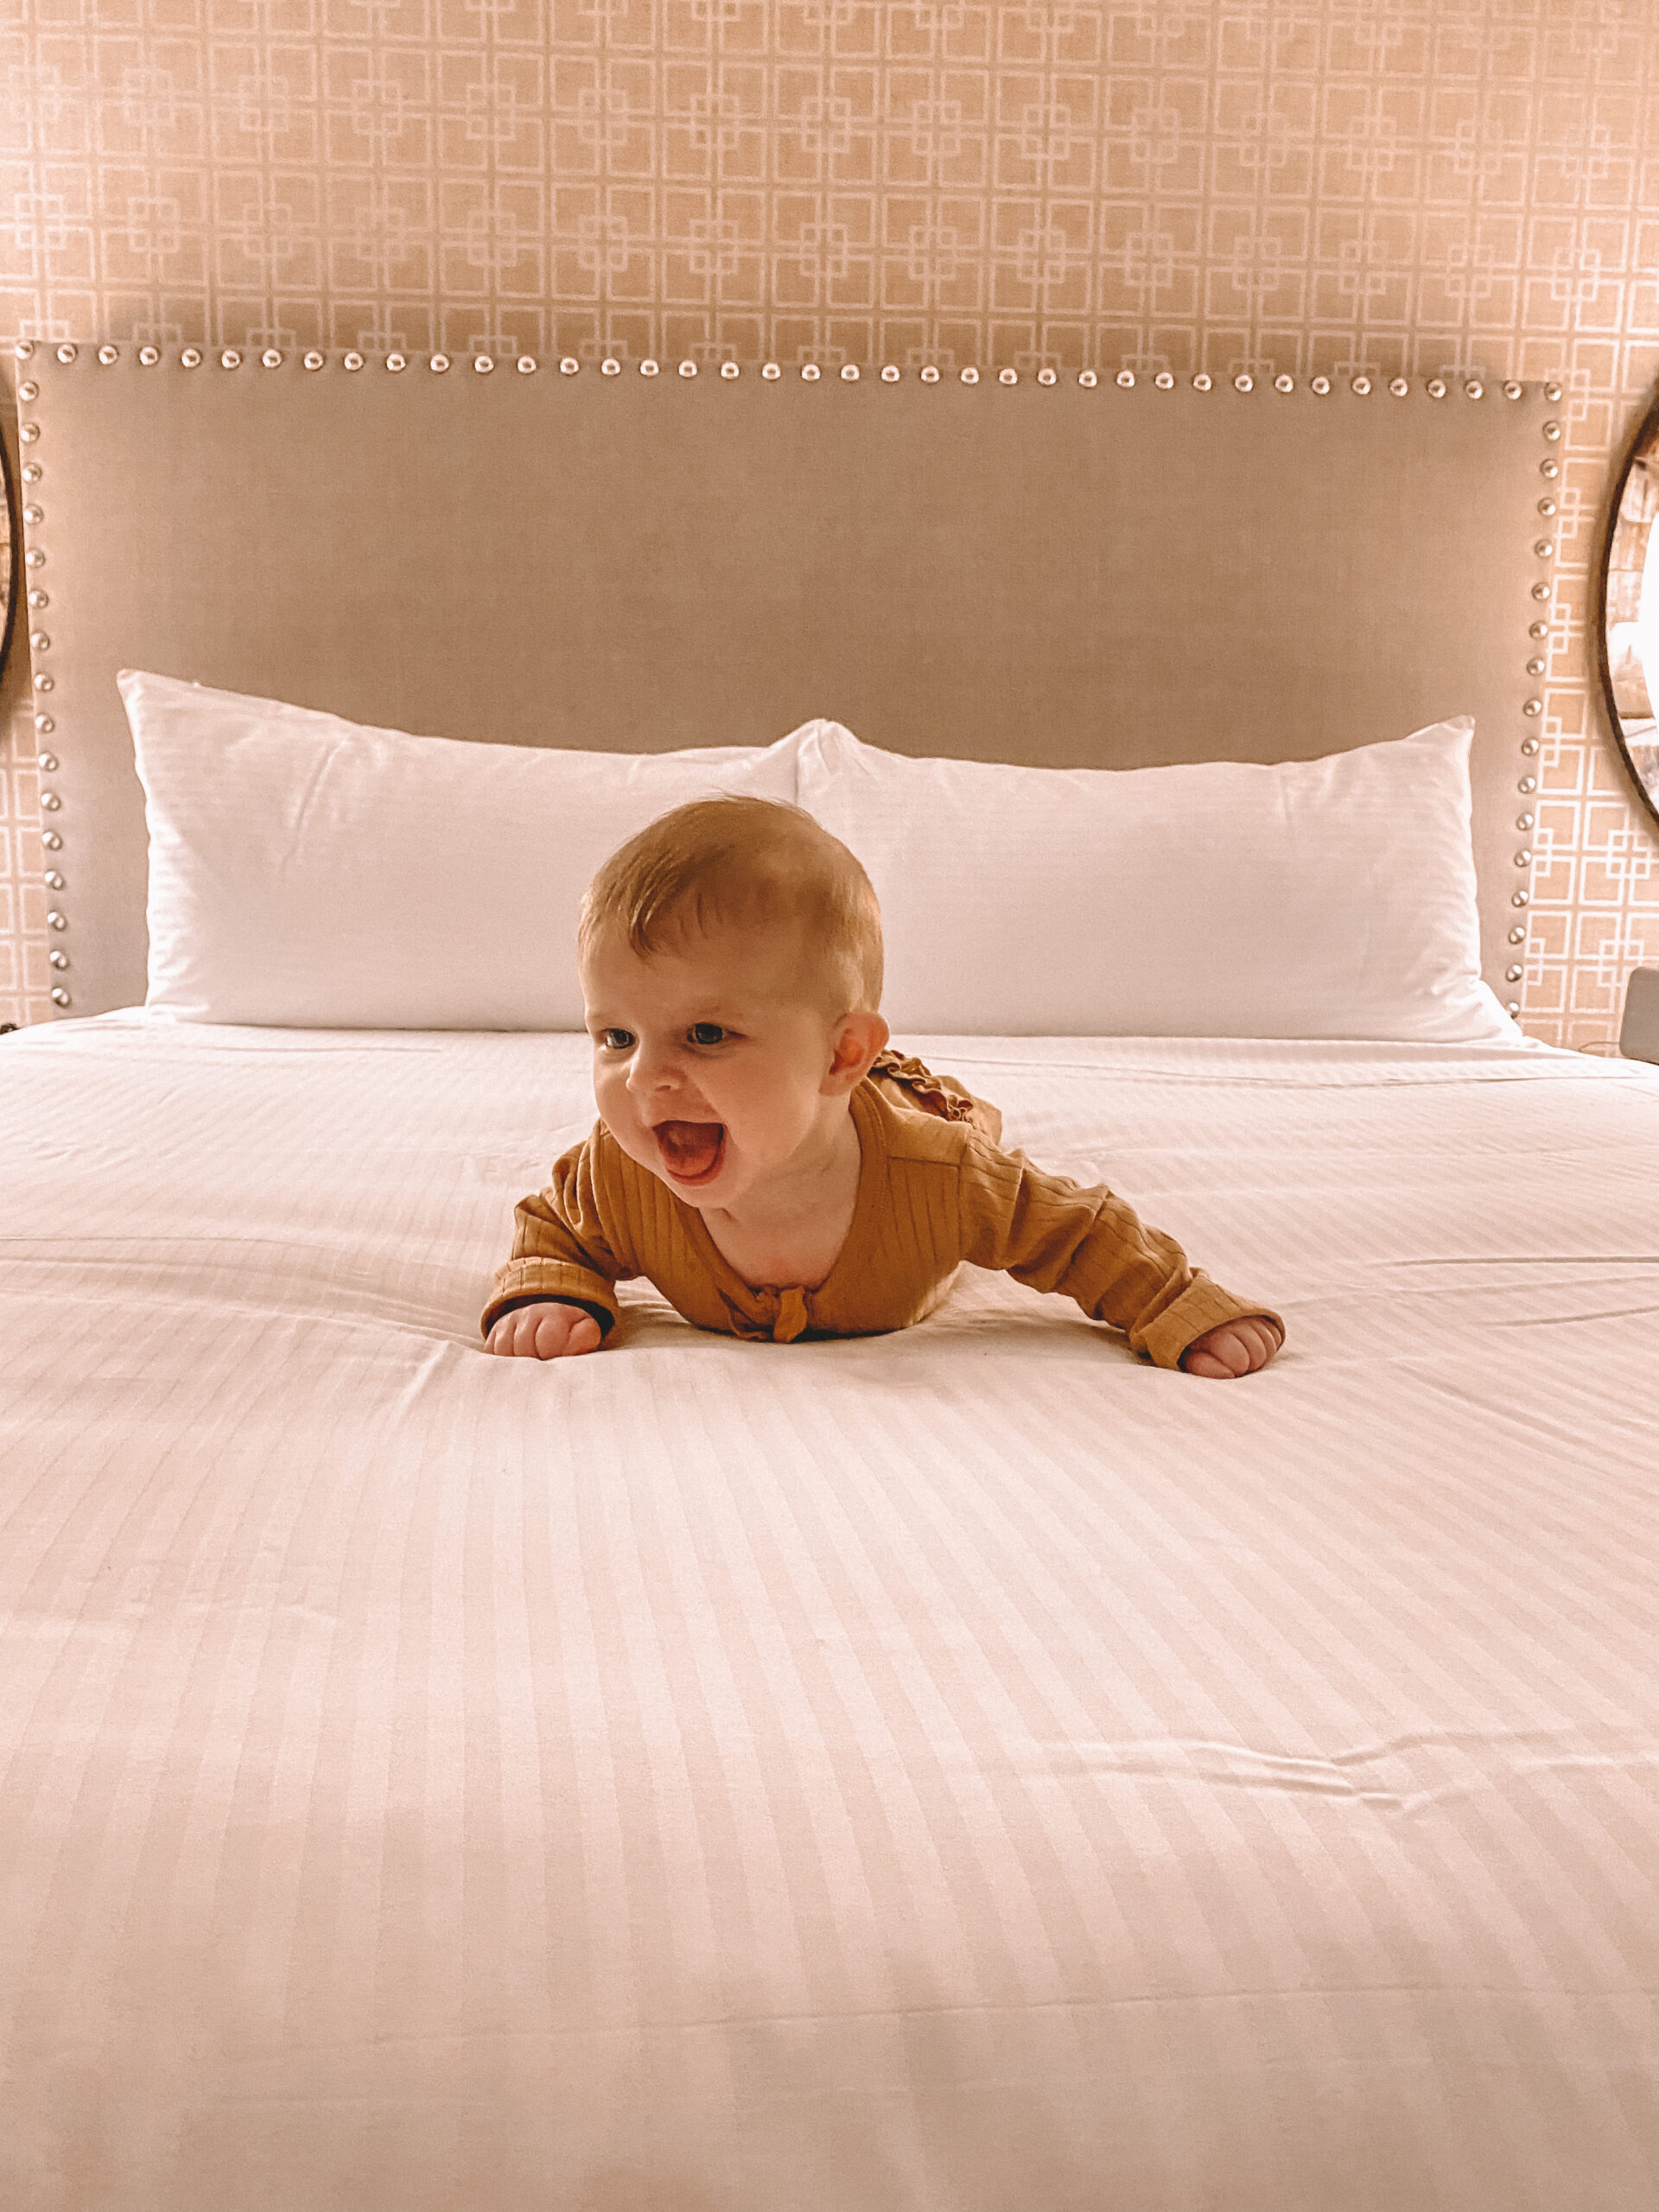 7 tips to survive a hotel with a baby